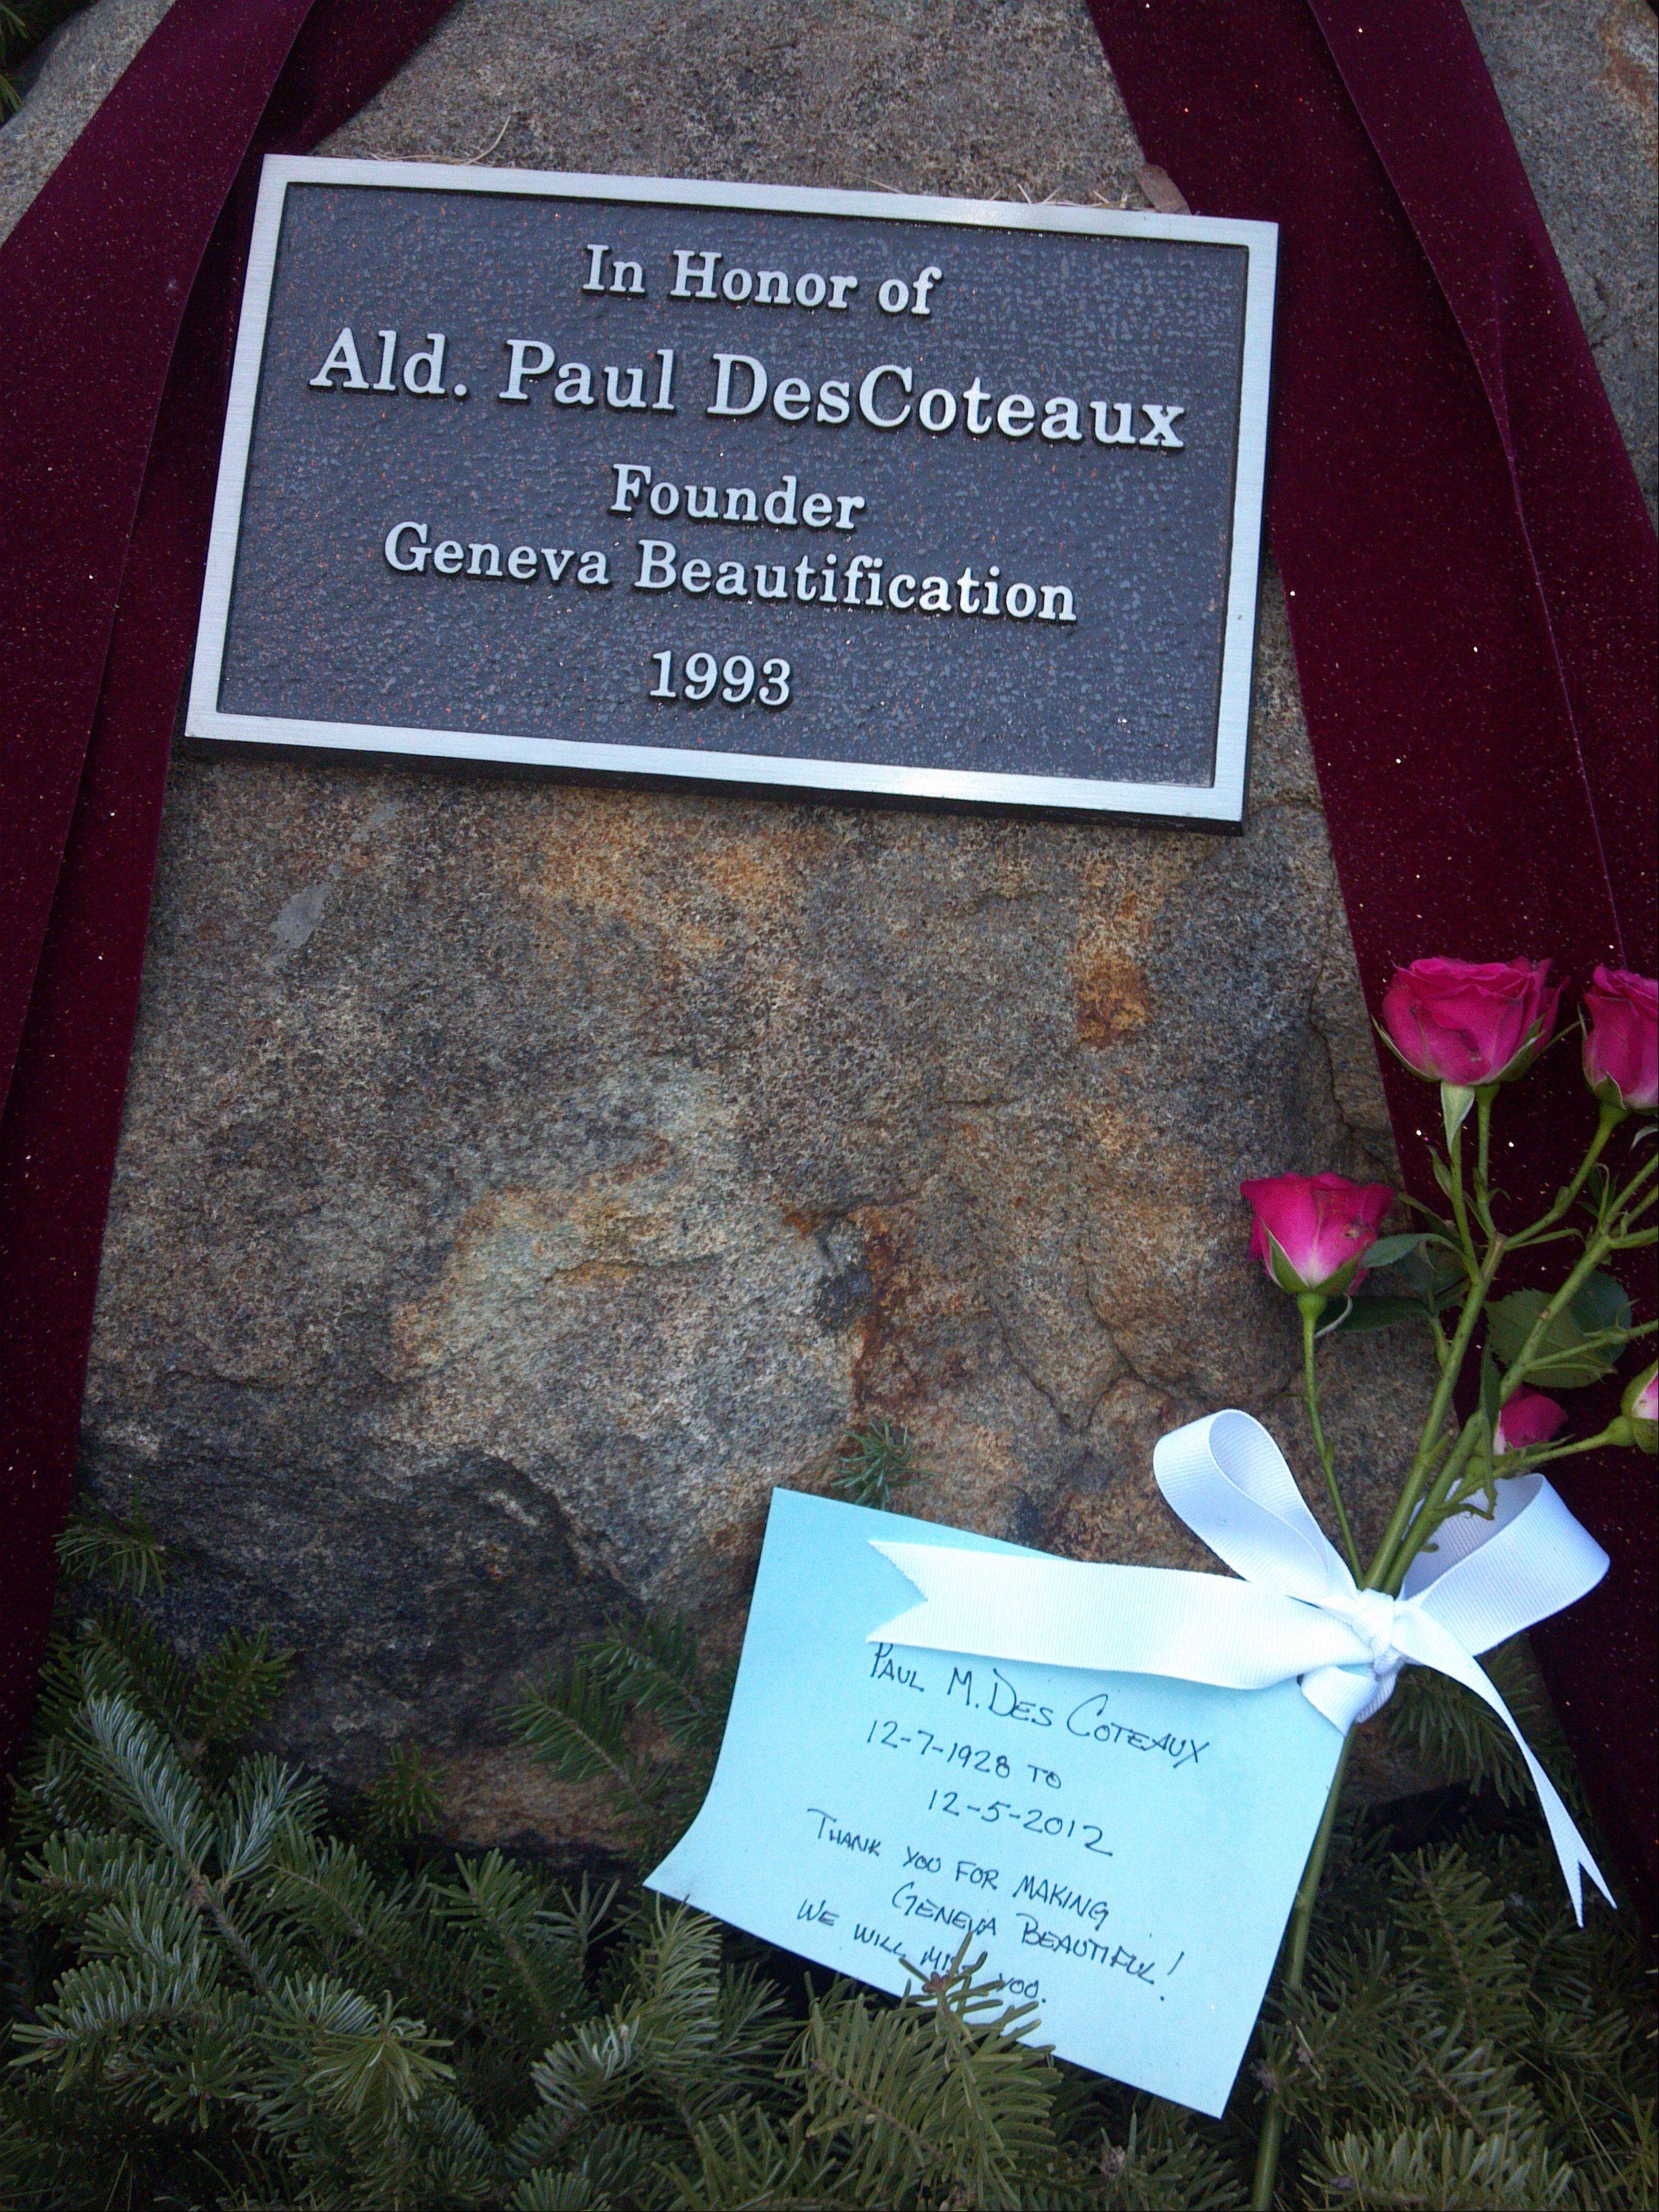 Someone placed a card and flowers on a rock outside the Geneva post office on Third Street for Paul DesCoteaux.